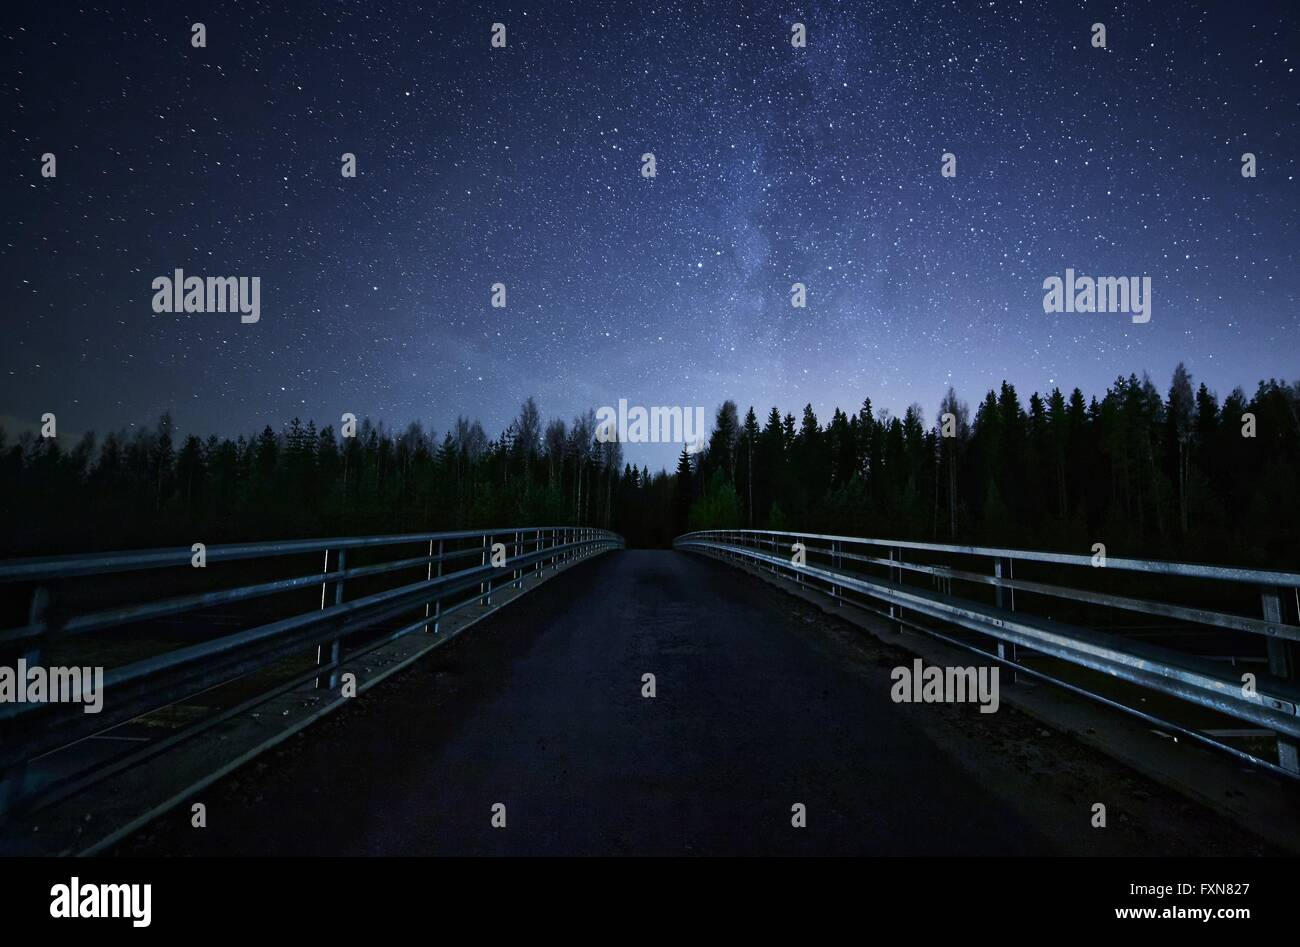 A road leading into night sky full of stars and visible milky way. A Bridge and dark forest on the foreground. - Stock Image